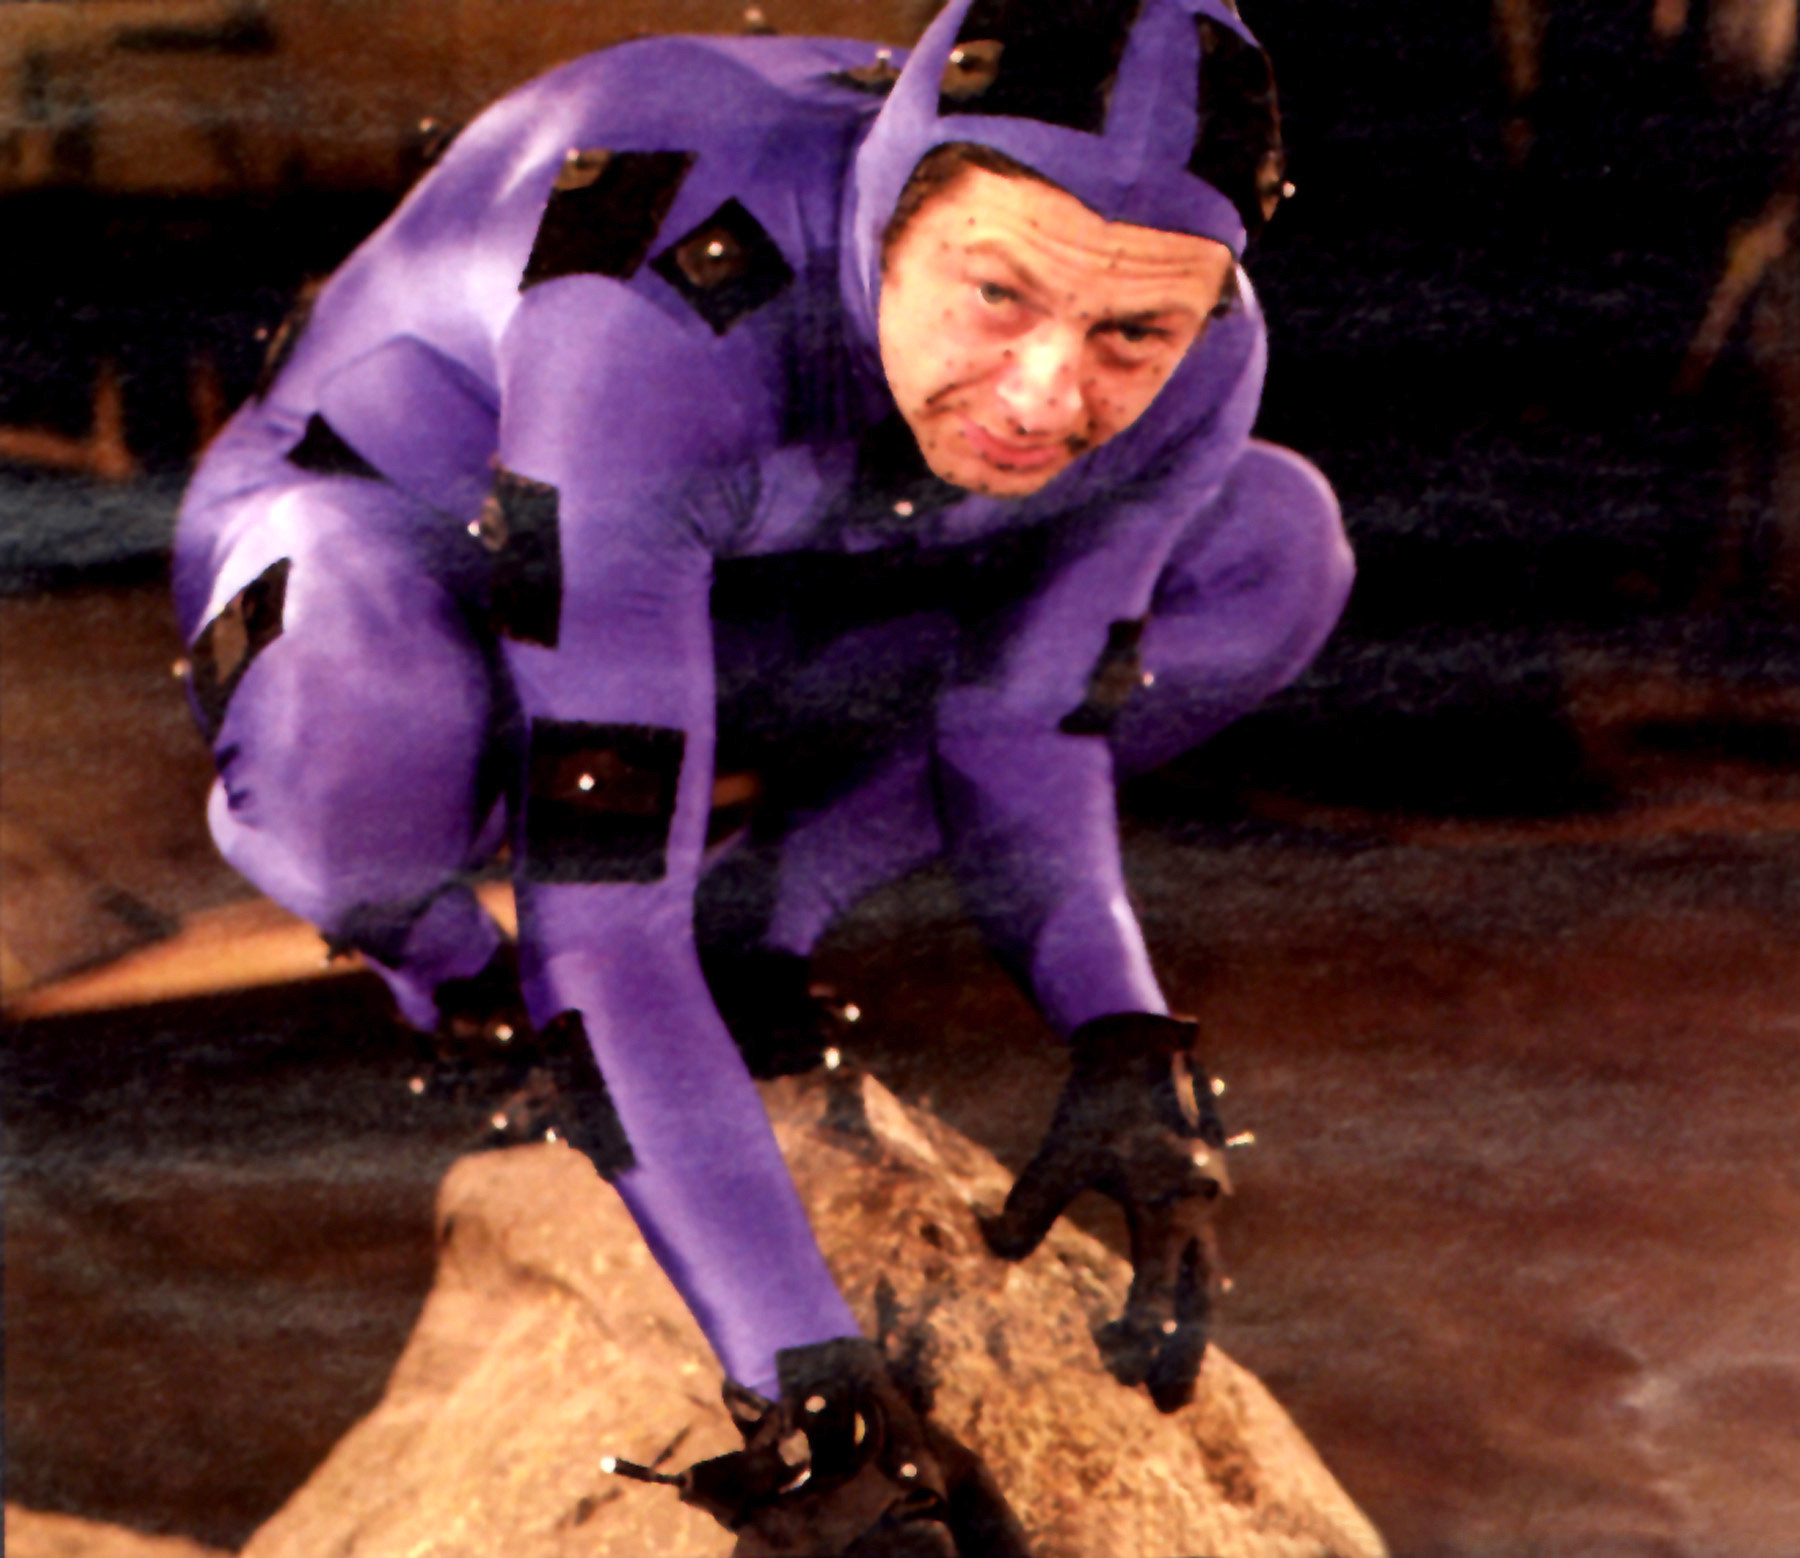 Andy Serkis crouching as Gollum in a morph suit